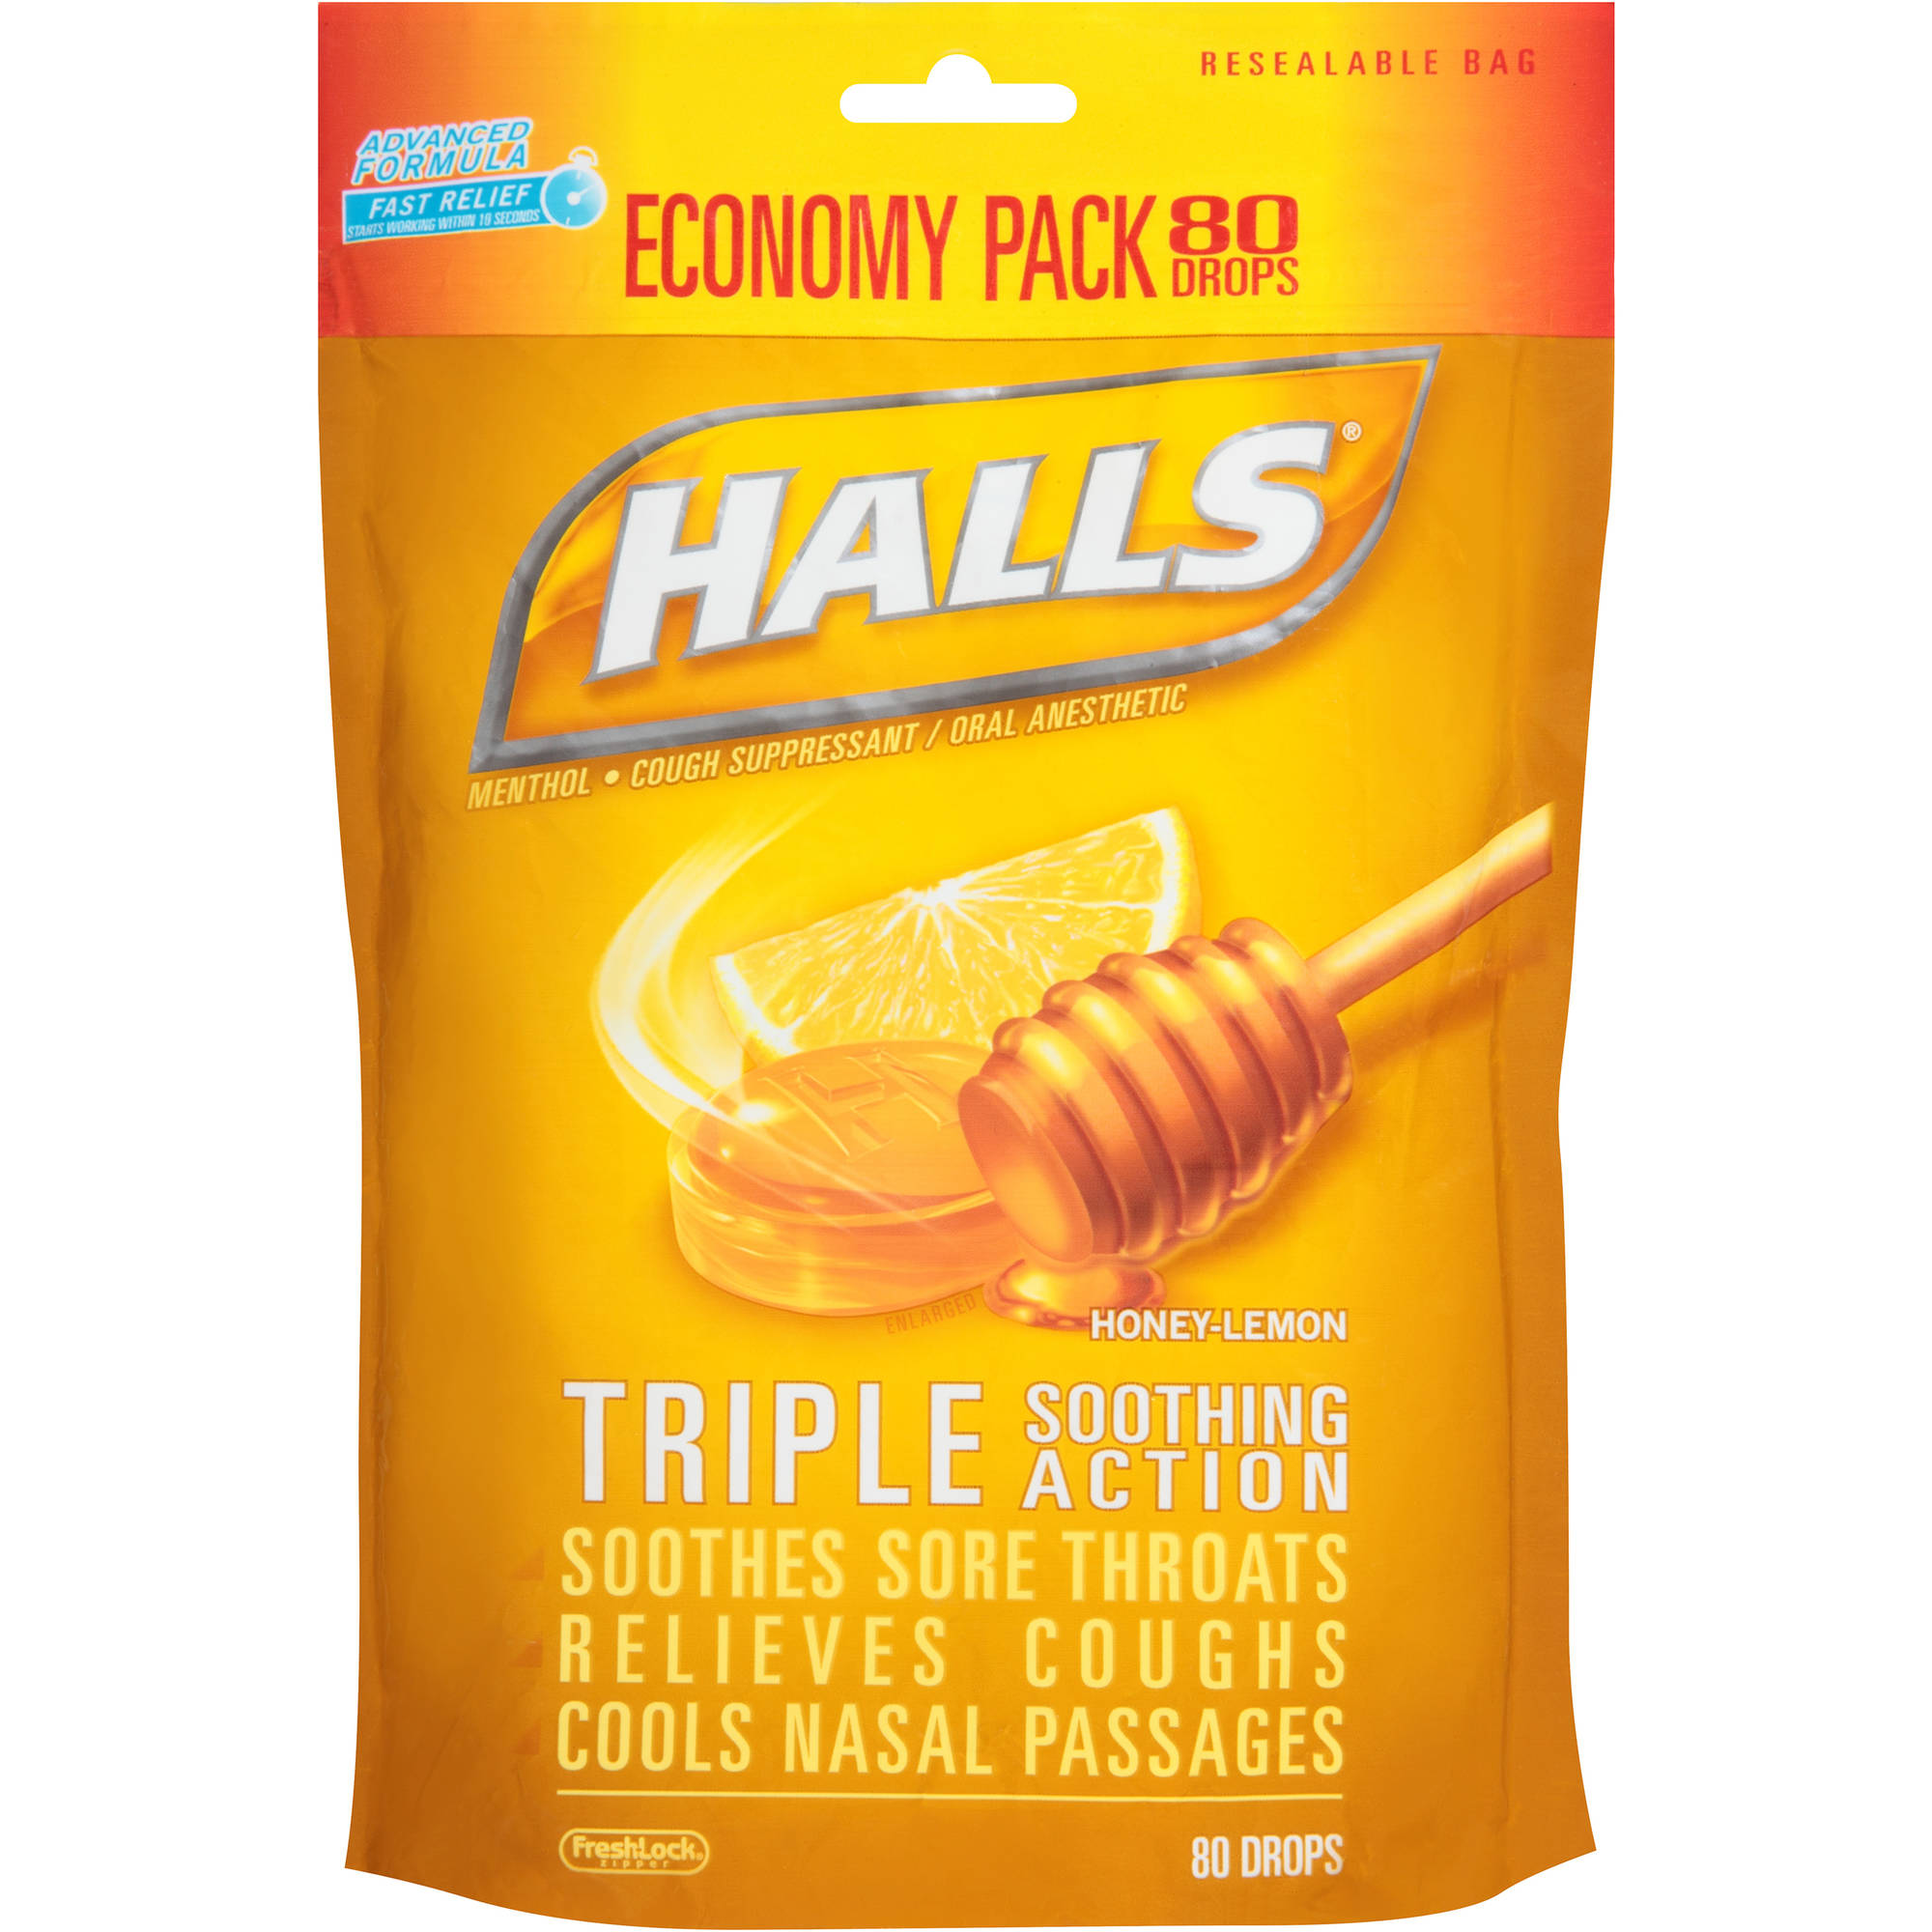 Halls Honey-Lemon Menthol Drops Cough Suppressant 80 Ct